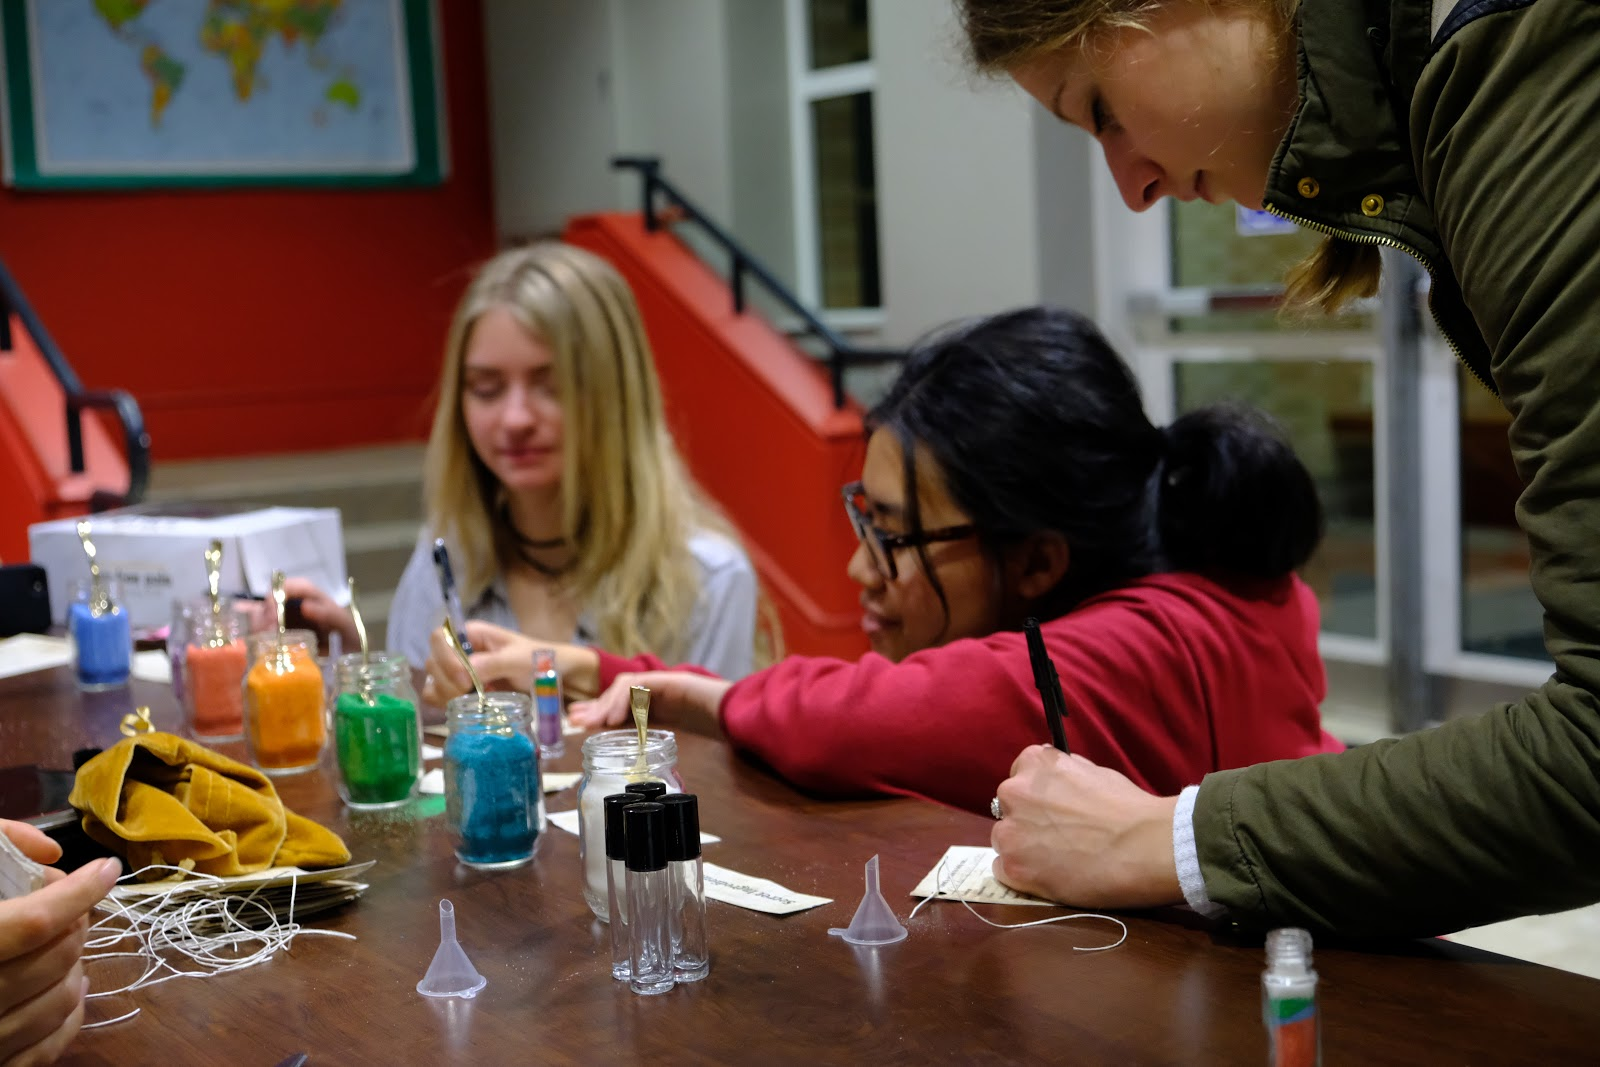 Participants of the Personalized Potions creating their own potions.